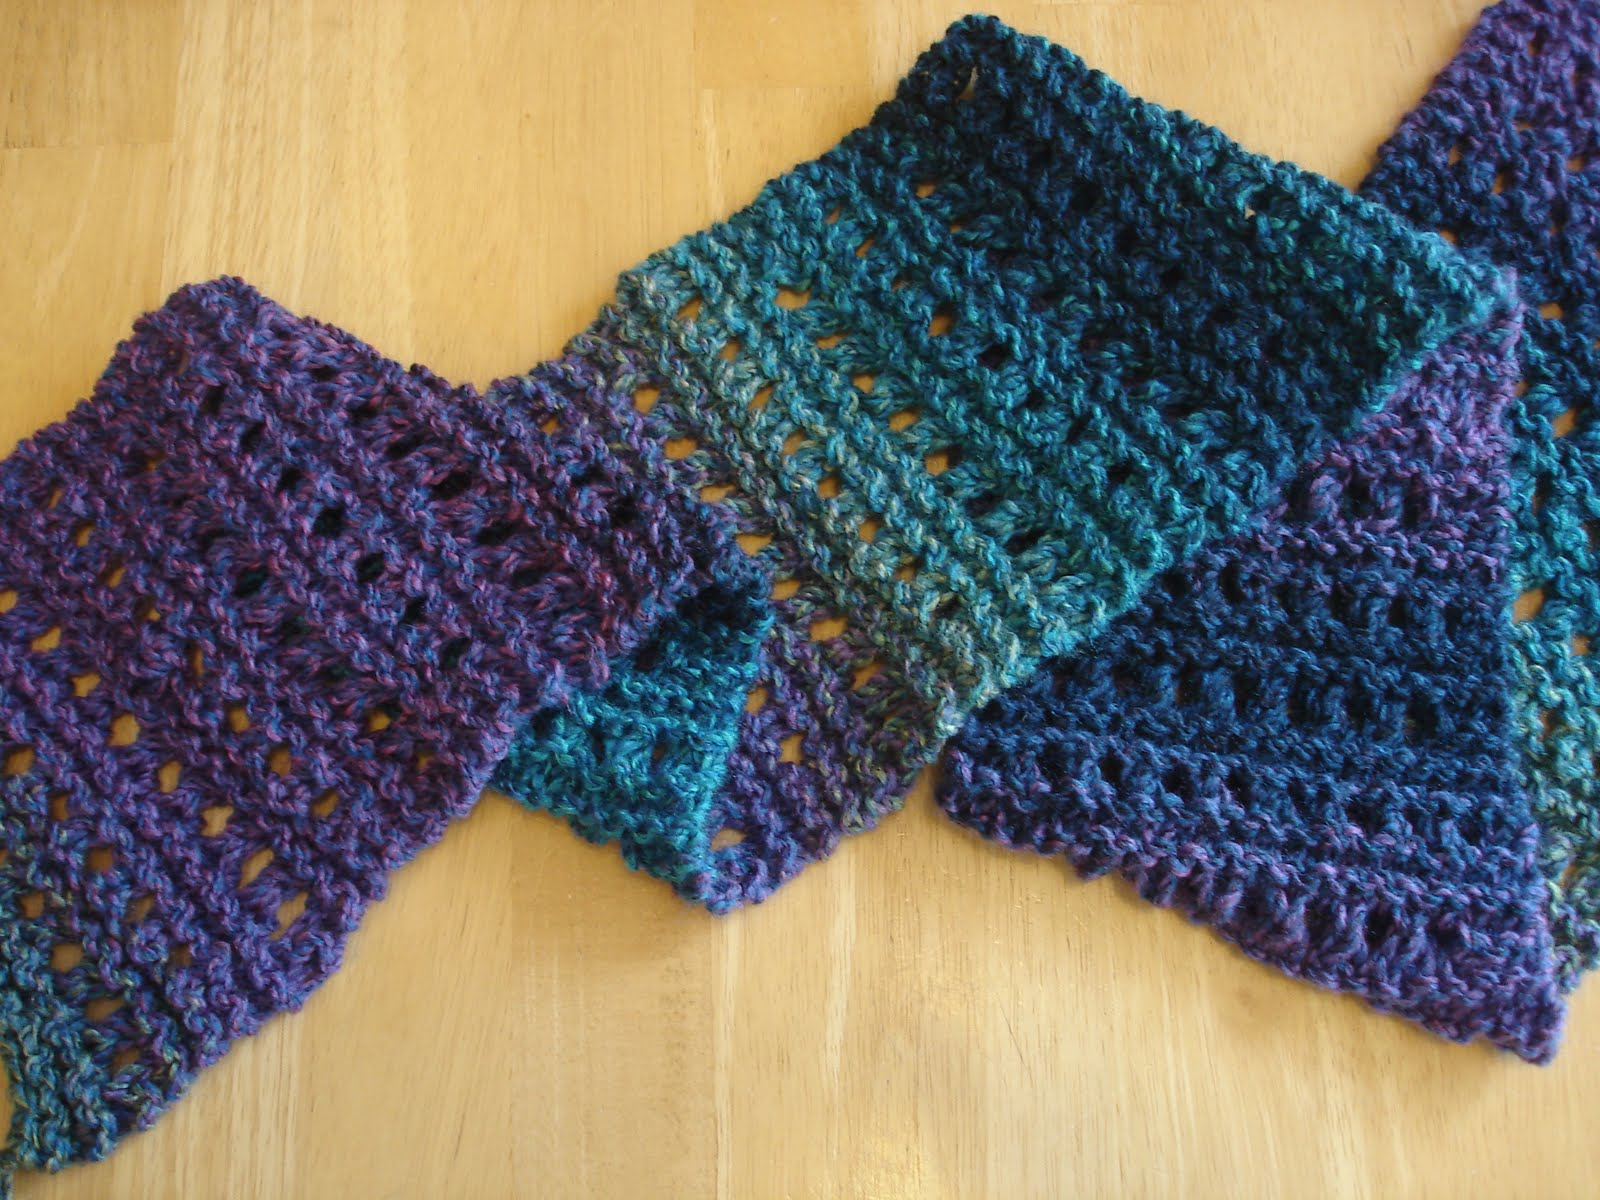 Simple Knitting Patterns Free : Fiber Flux: Free Knitting Pattern: Tweedy Eyelet Scarf!